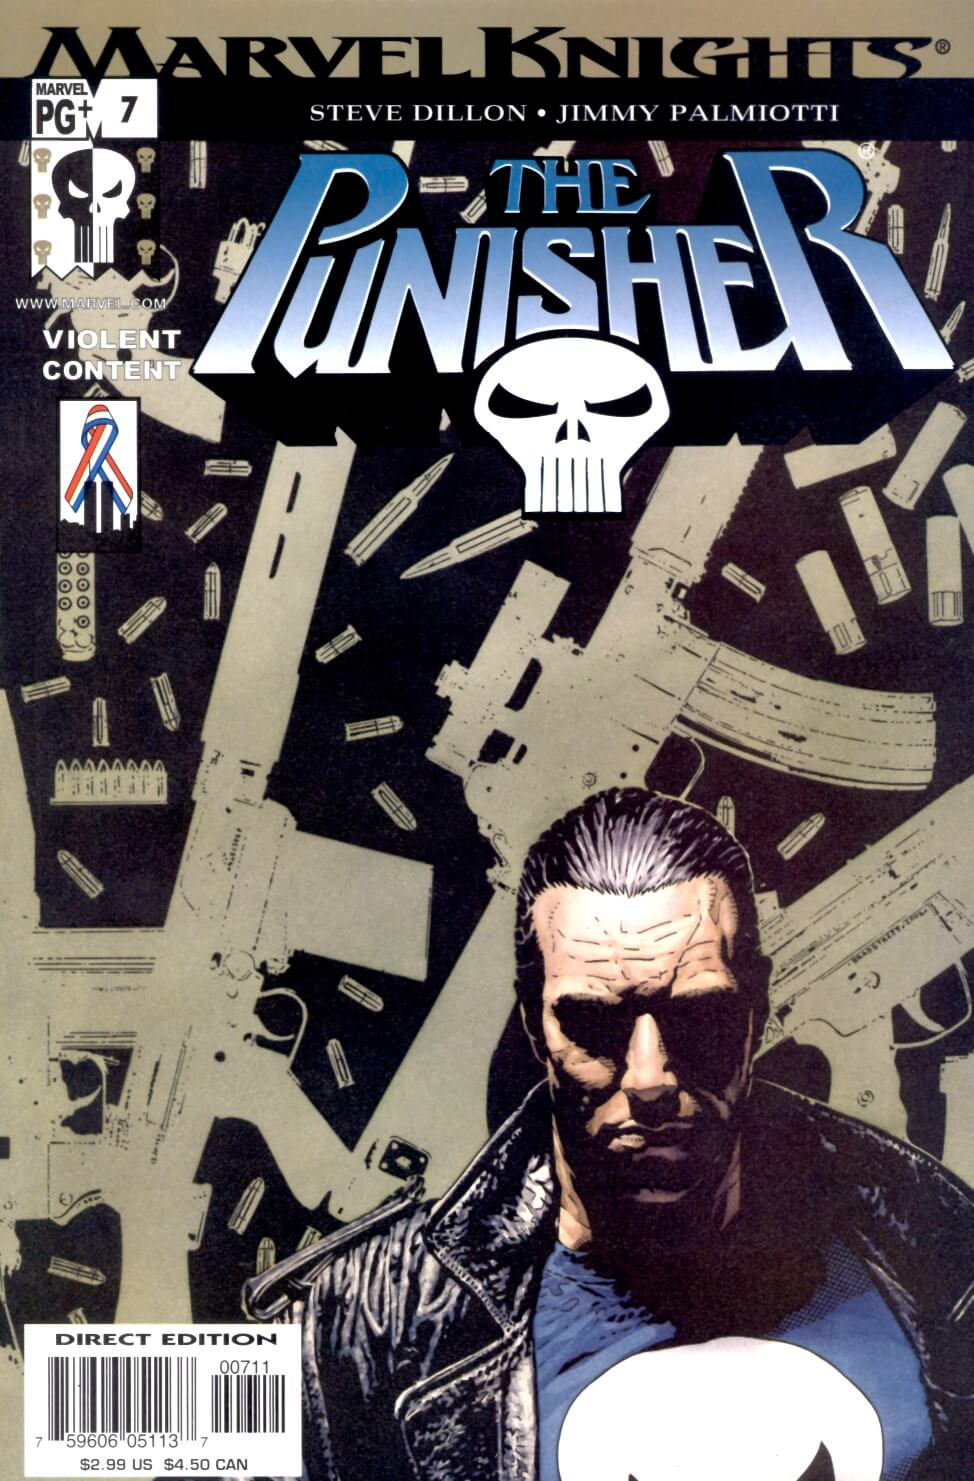 The Punisher Vol 5 #7